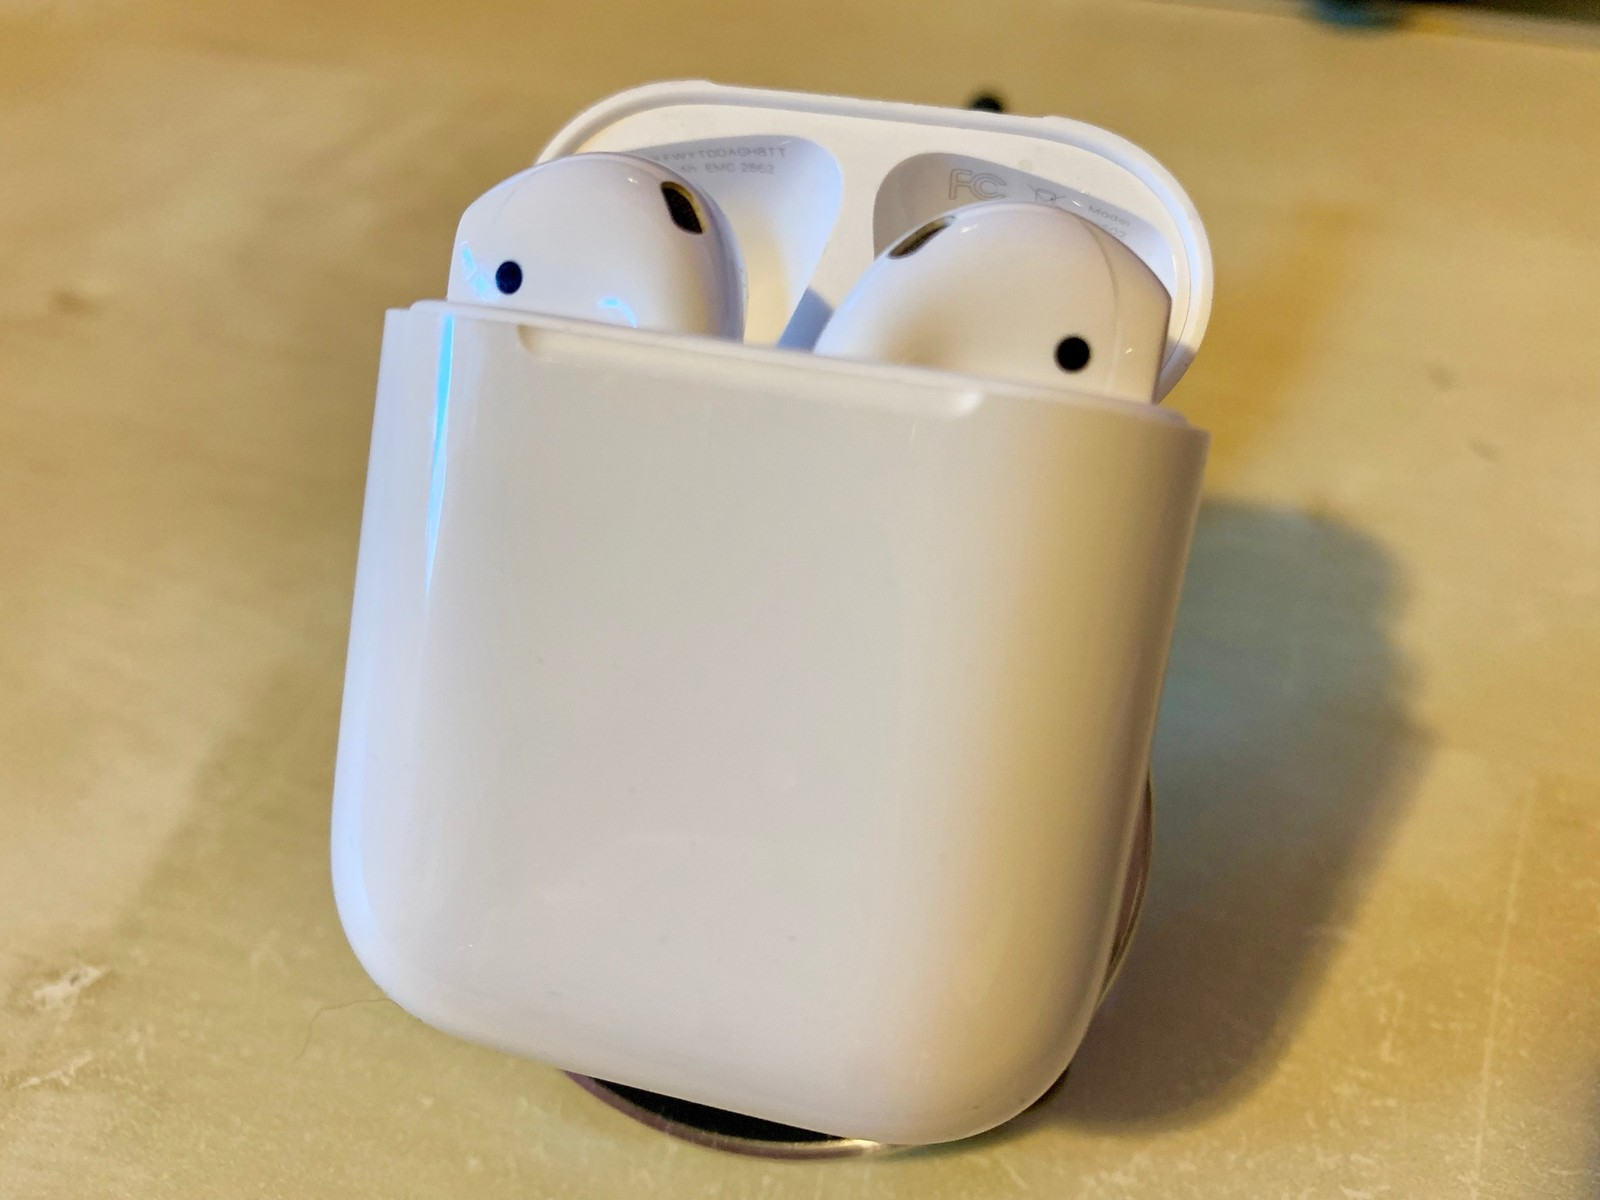 AirPods in their case